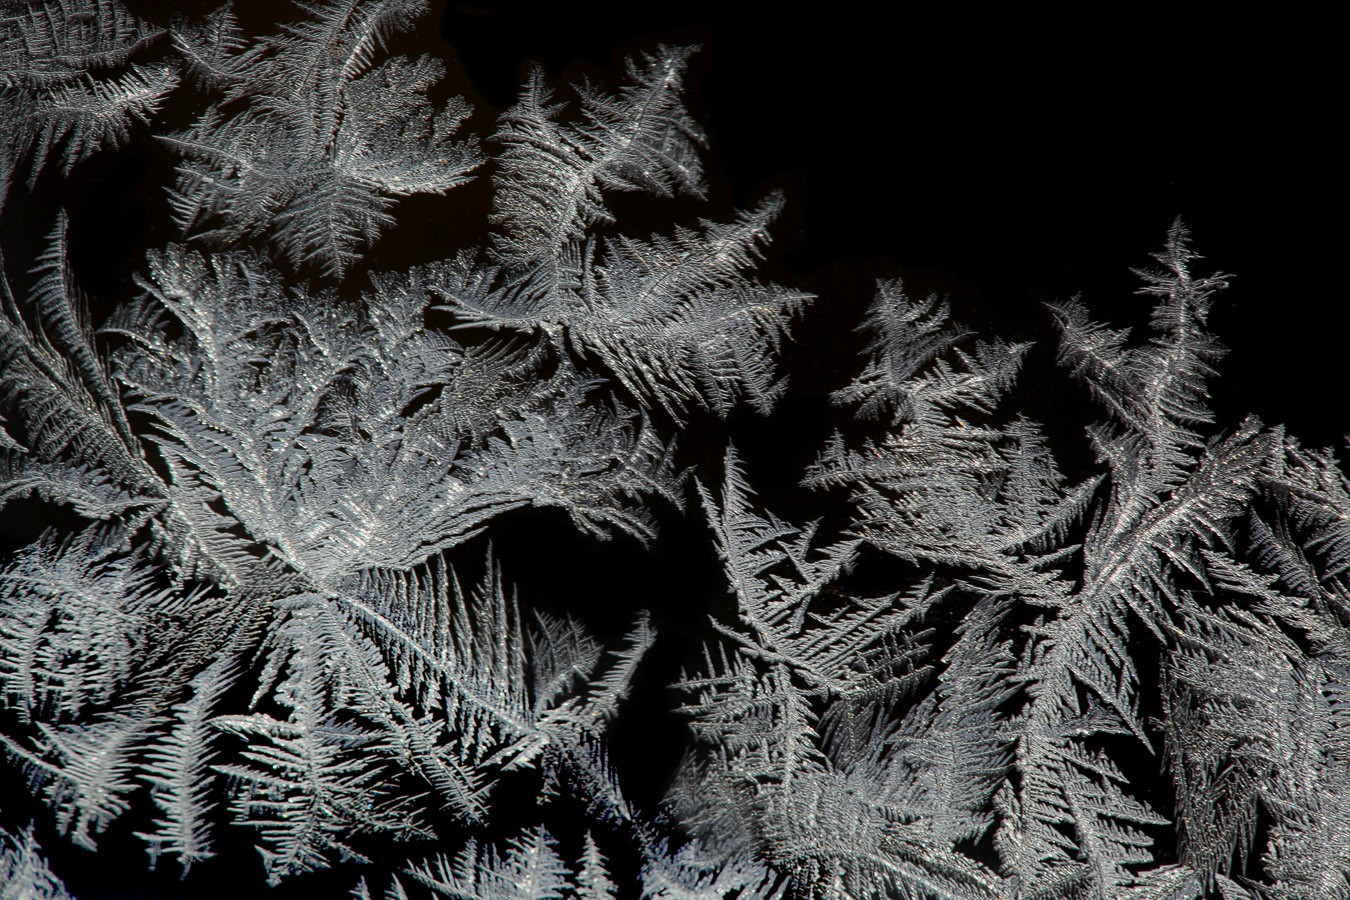 frost flowers img aw author sava gregory and vere verena